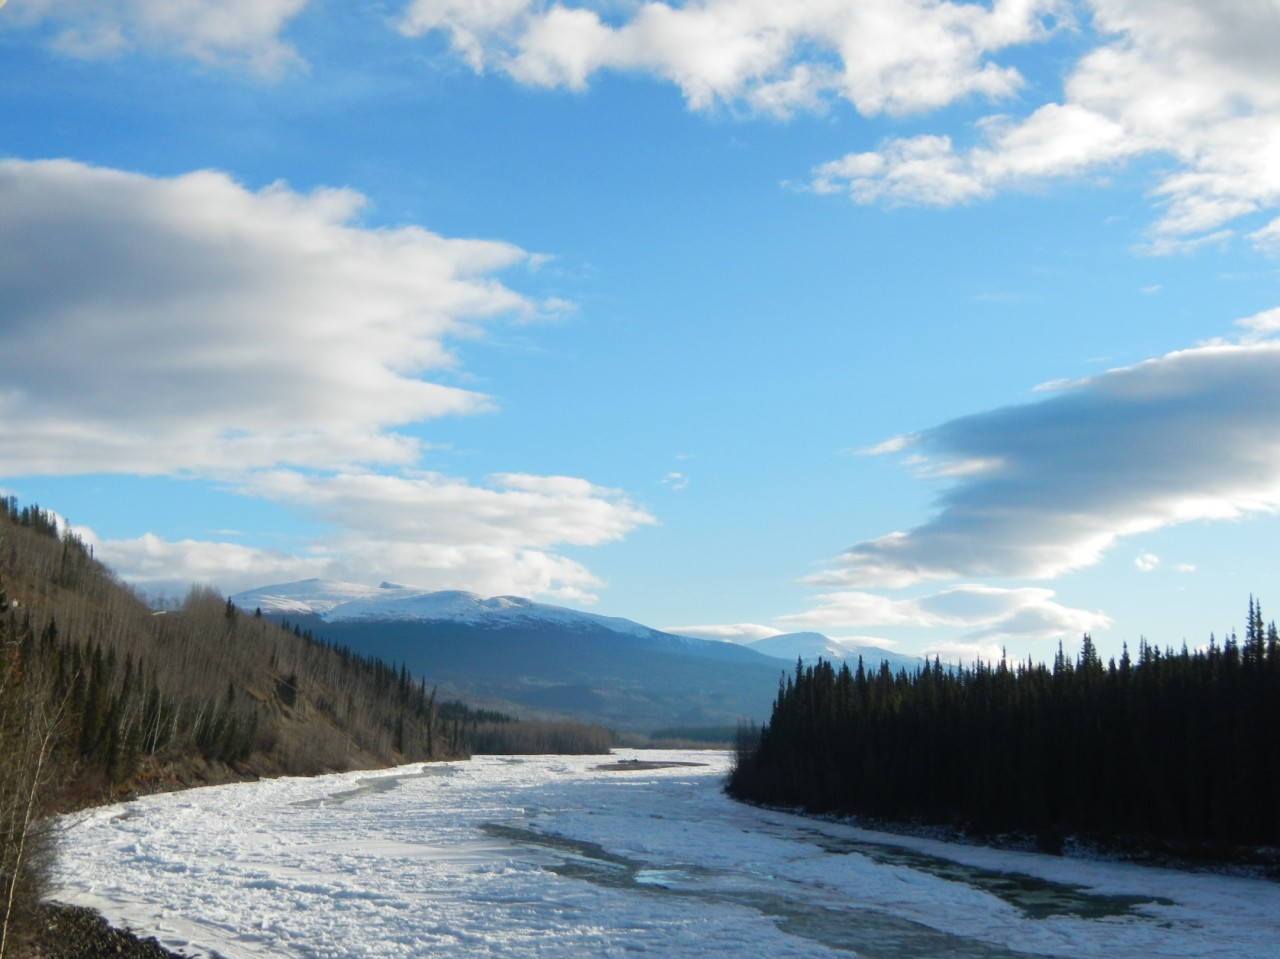 Semi Frozen River in the Western Canadian Rockies